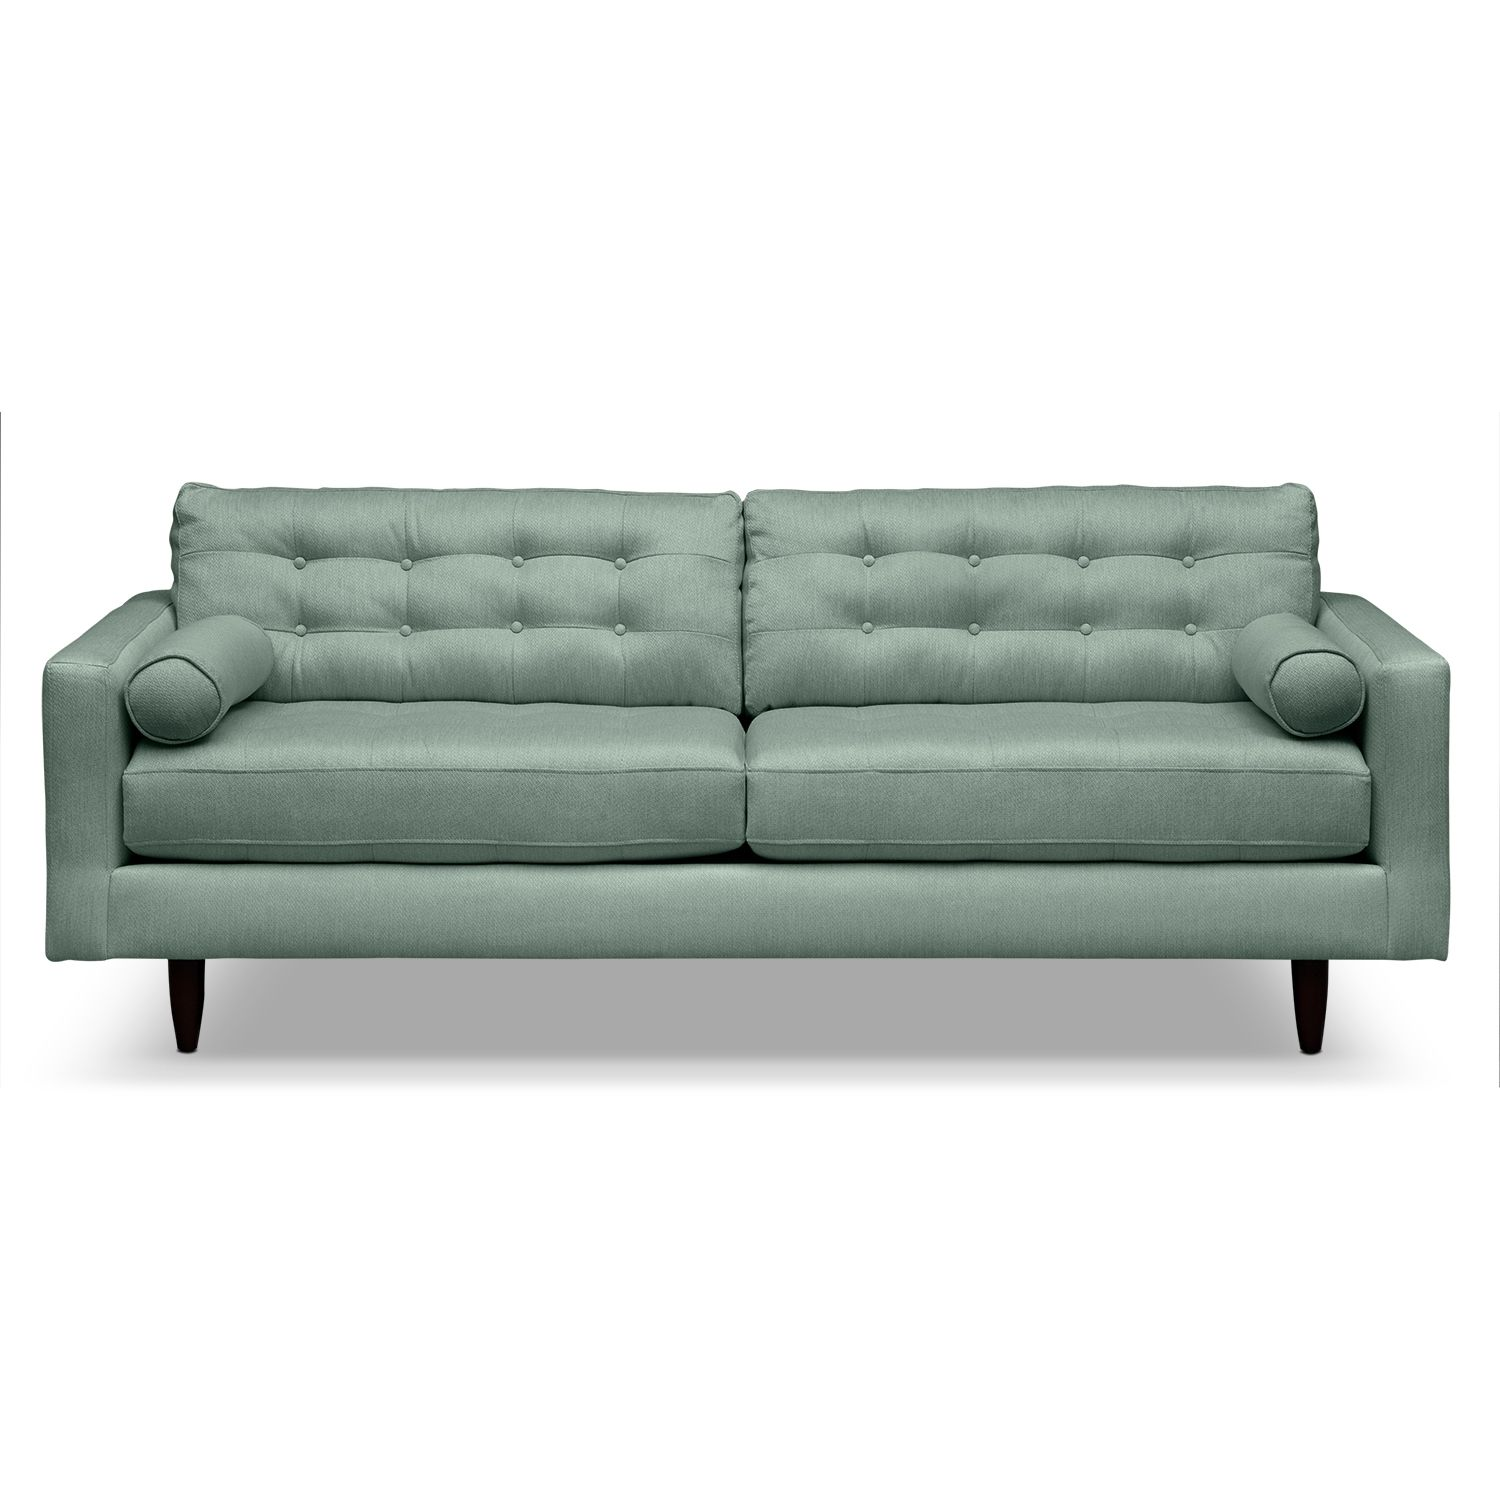 549 Avenue Iii Upholstery Sofa Value City Furniture